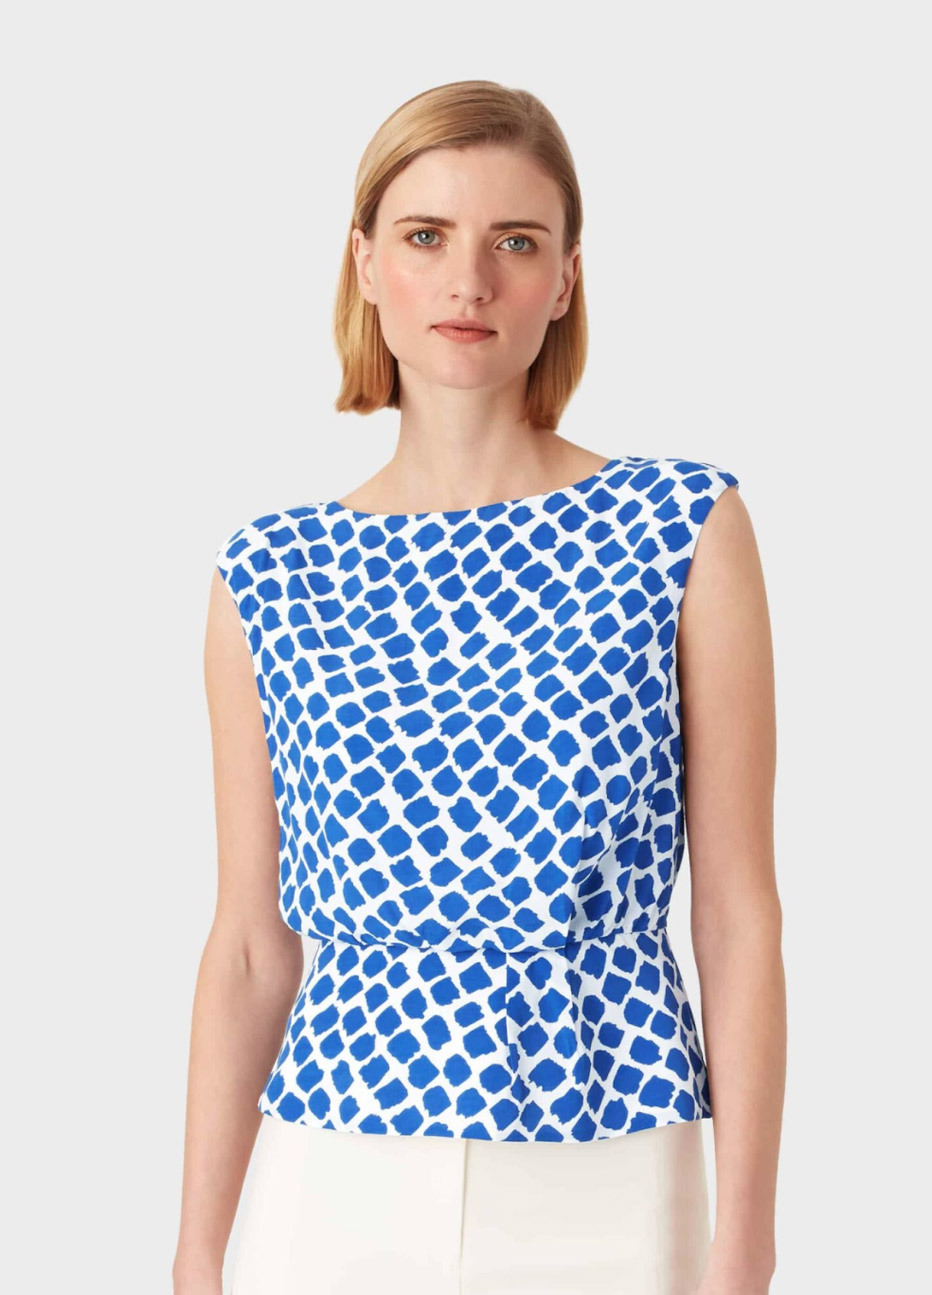 Women's top in blue and white with a contemporary spot print styled with white trousers, by Hobbs.